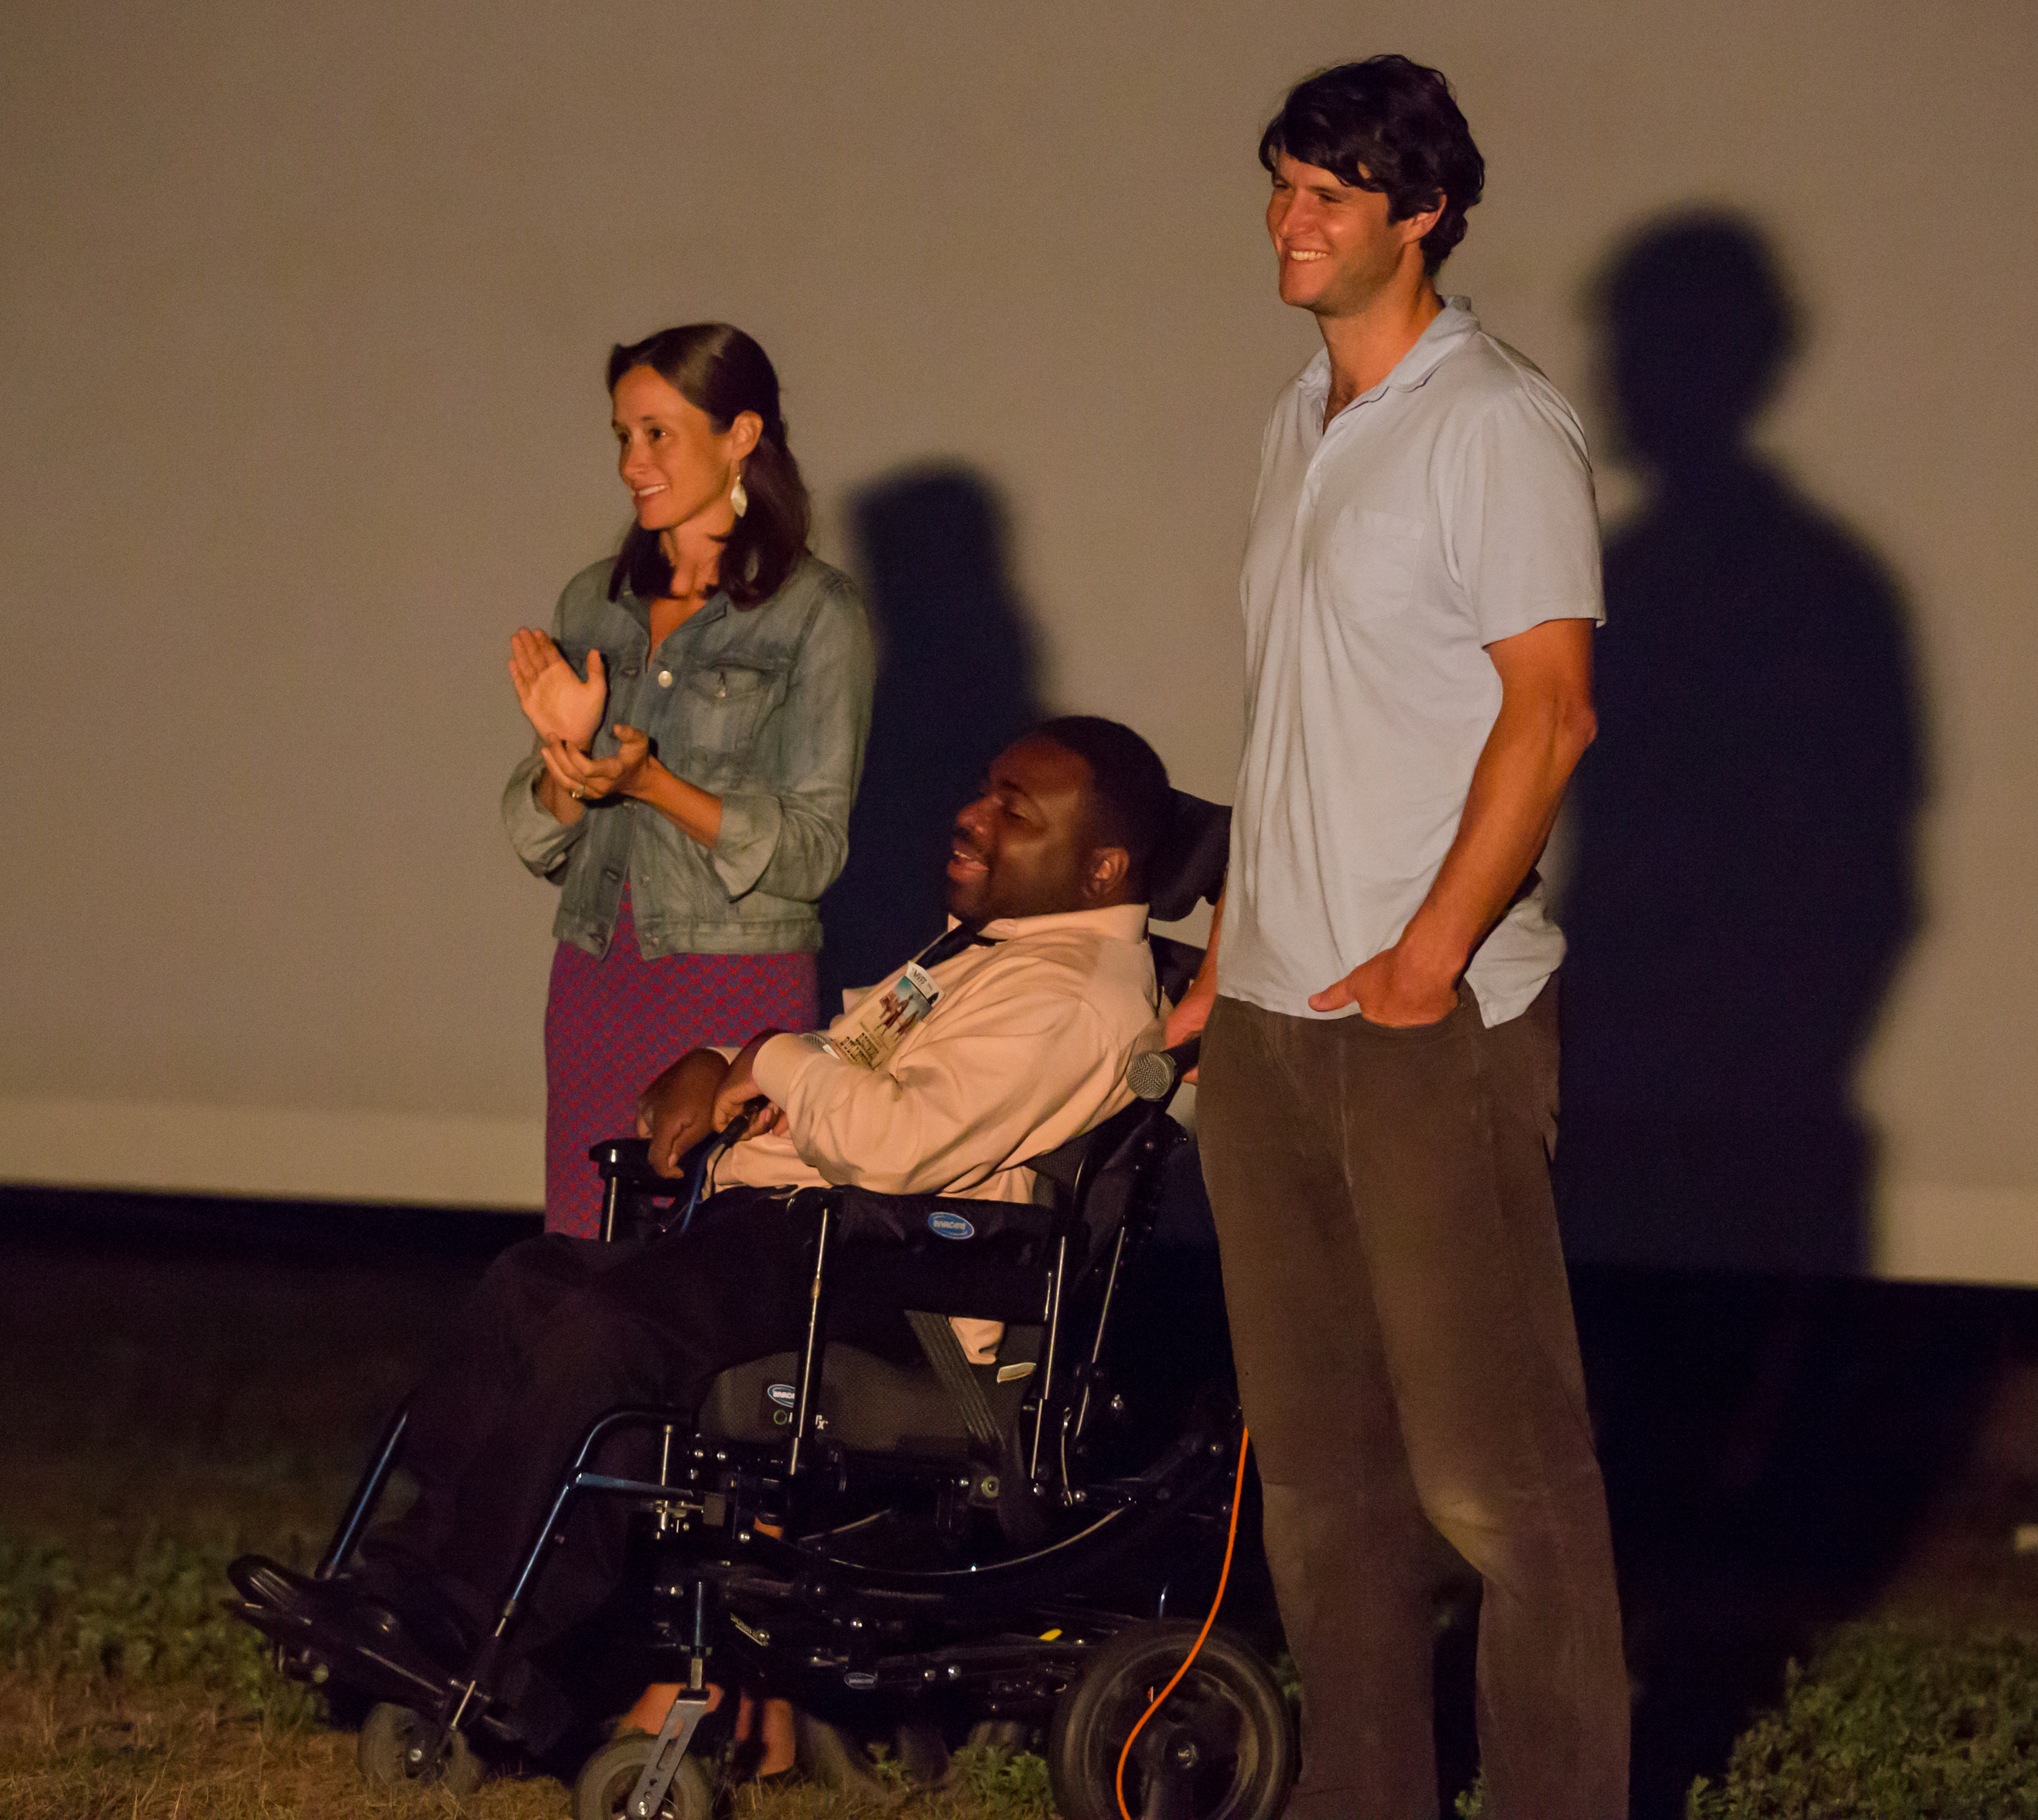 Film subjects Ila Halby, A.J. Murray, and Peter Halby receive a standing ovation after the outdoor screening of BECOMING BULLETPROOF on August 13, 2015, at Owen Park in Vineyard Haven. Photo by Maria Thibodeau.